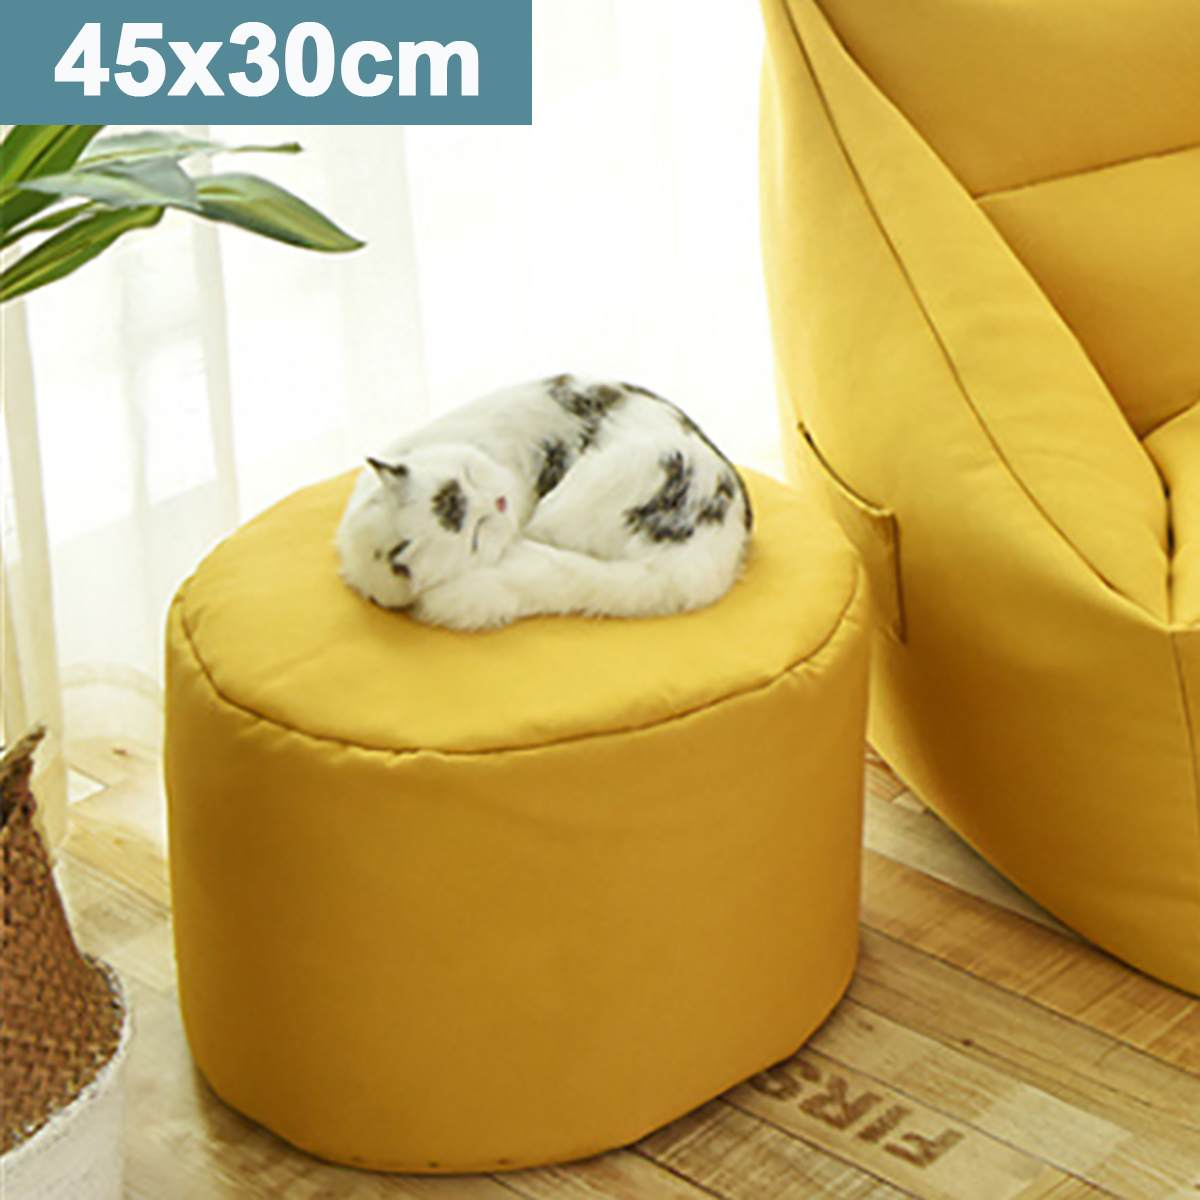 Pleasant Lazy Sofa Waterproof Stuffed Animal Storage Toy Bean Bag Pdpeps Interior Chair Design Pdpepsorg